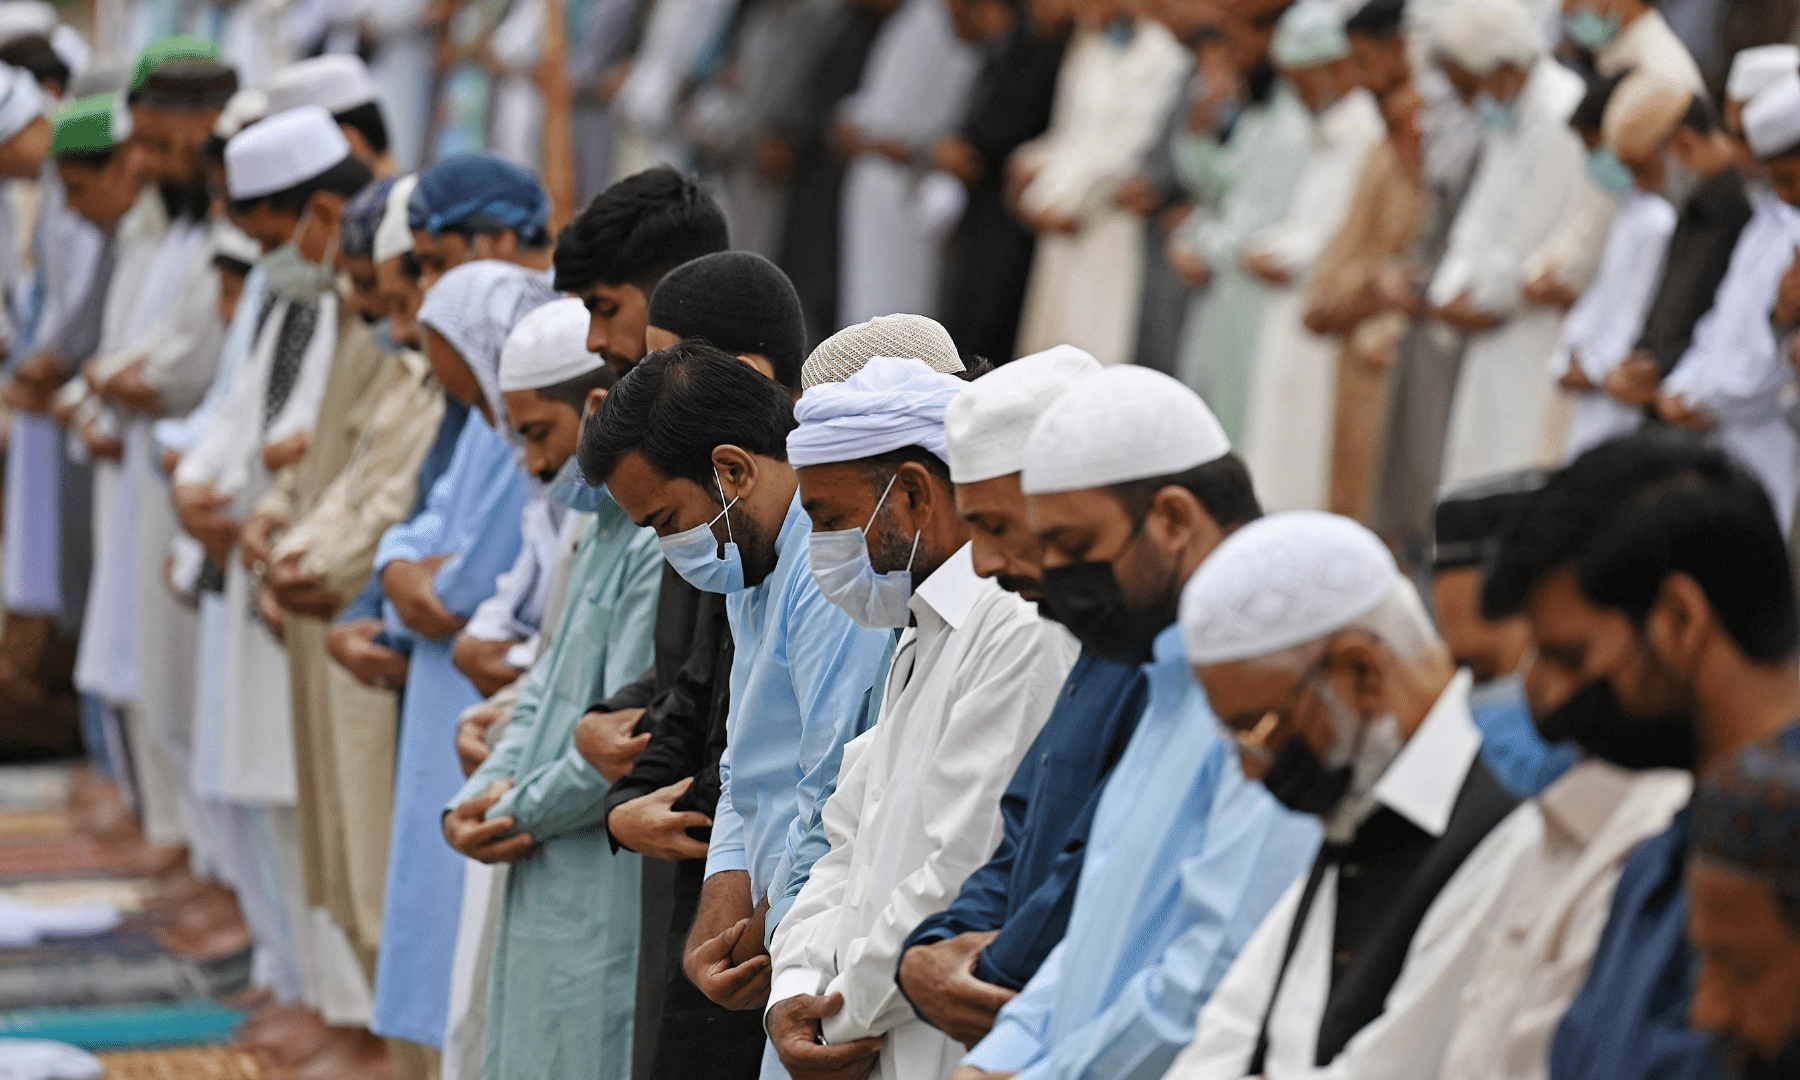 Muslims offer prayers on the occasion of Eidul Fitr that marks the end of the holy month of Ramazan at Eidgah Sharif in Rawalpindi on Thursday. — AFP